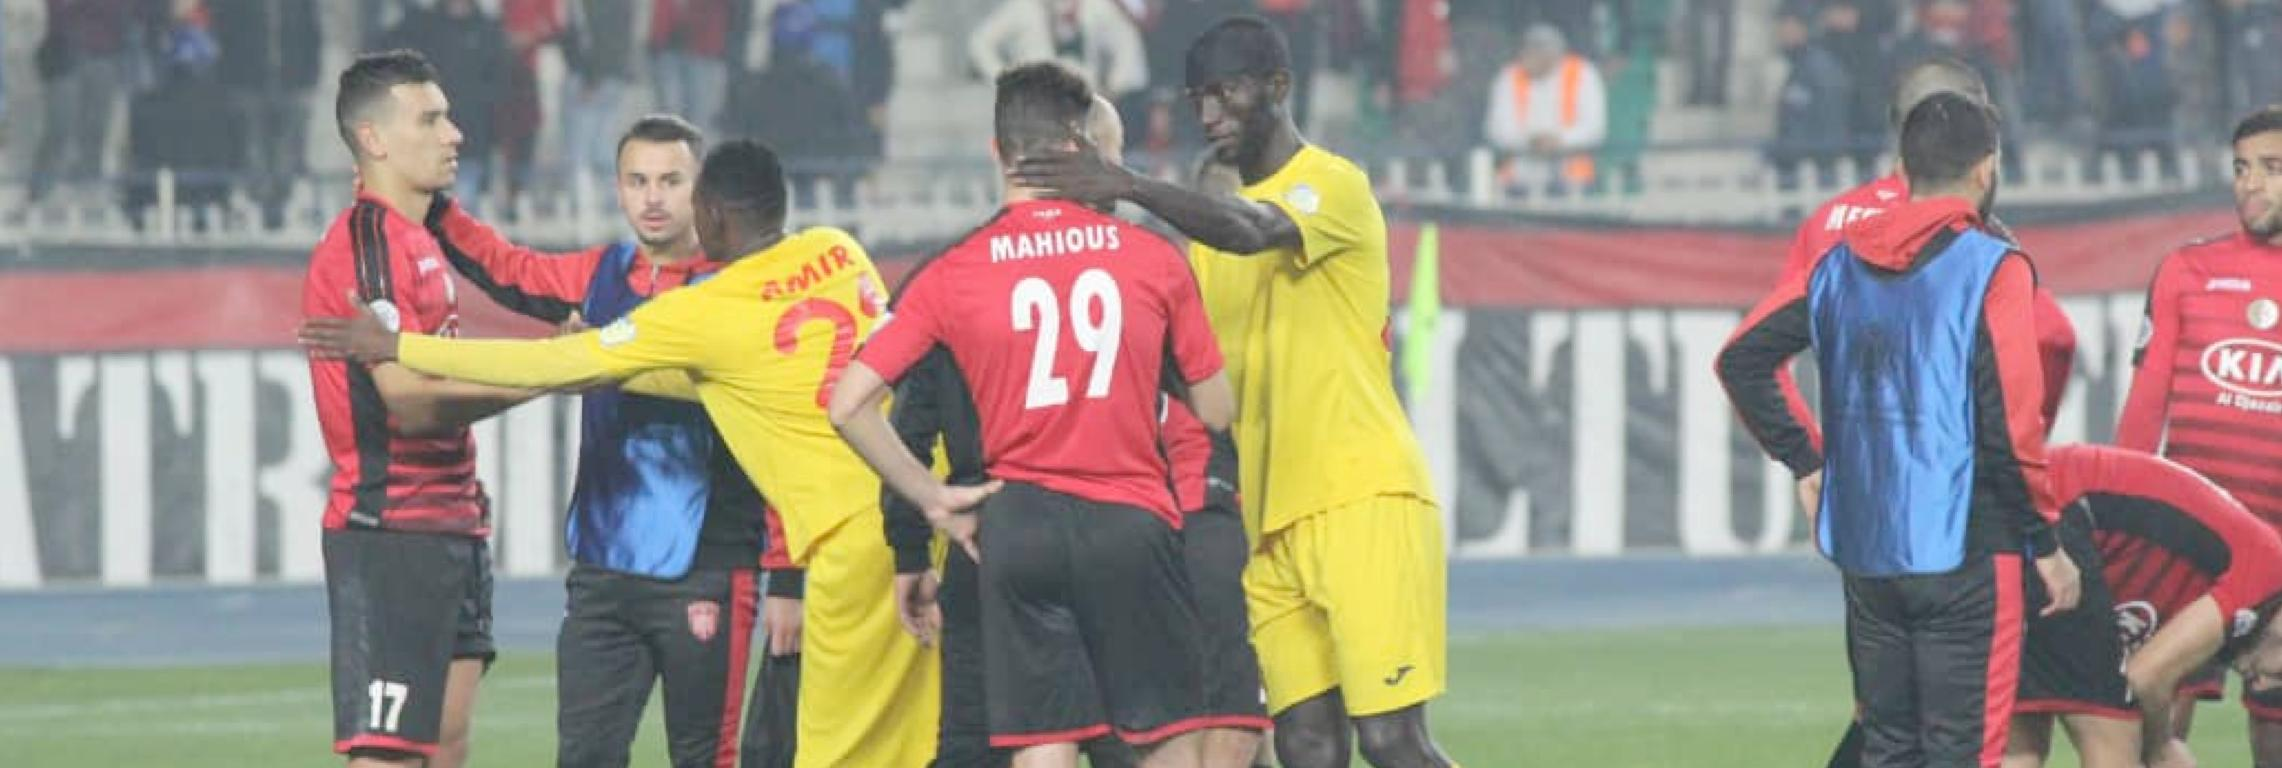 Coupe arabe : l'USM Alger rate l'exploit de peu